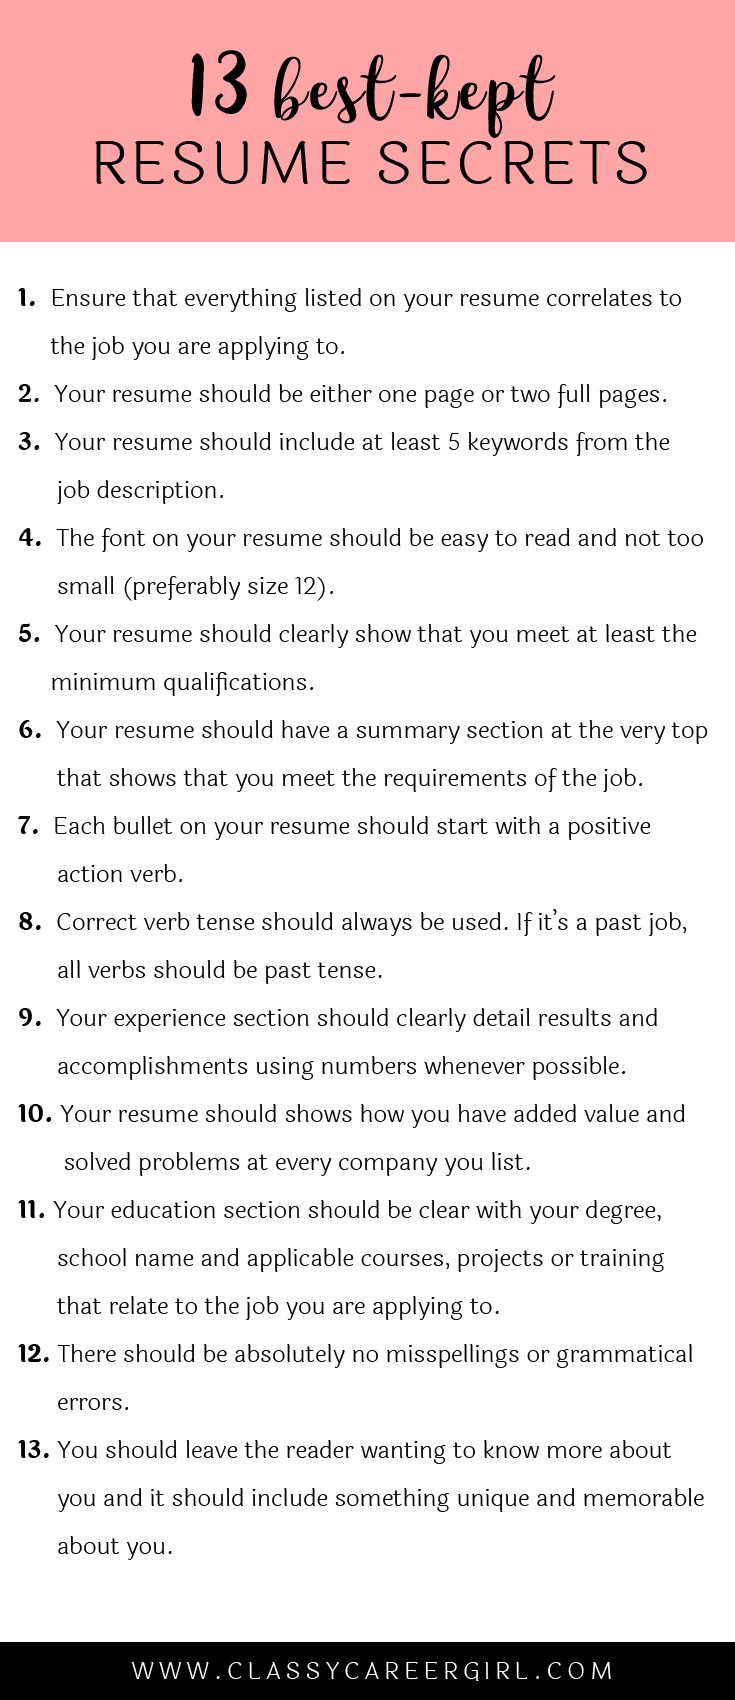 Opposenewapstandardsus  Marvelous  Ideas About Resume On Pinterest  Cv Format Resume Cv And  With Likable Some Hiring Managers Will Toss Your Resume Out If You Dont Know These  With Beautiful Administrative Assistant Resume Skills Also Resume Template Word Free In Addition Electrical Engineer Resume And Example Of Resume Objective As Well As What Is An Objective In A Resume Additionally Internship Resume Examples From Pinterestcom With Opposenewapstandardsus  Likable  Ideas About Resume On Pinterest  Cv Format Resume Cv And  With Beautiful Some Hiring Managers Will Toss Your Resume Out If You Dont Know These  And Marvelous Administrative Assistant Resume Skills Also Resume Template Word Free In Addition Electrical Engineer Resume From Pinterestcom